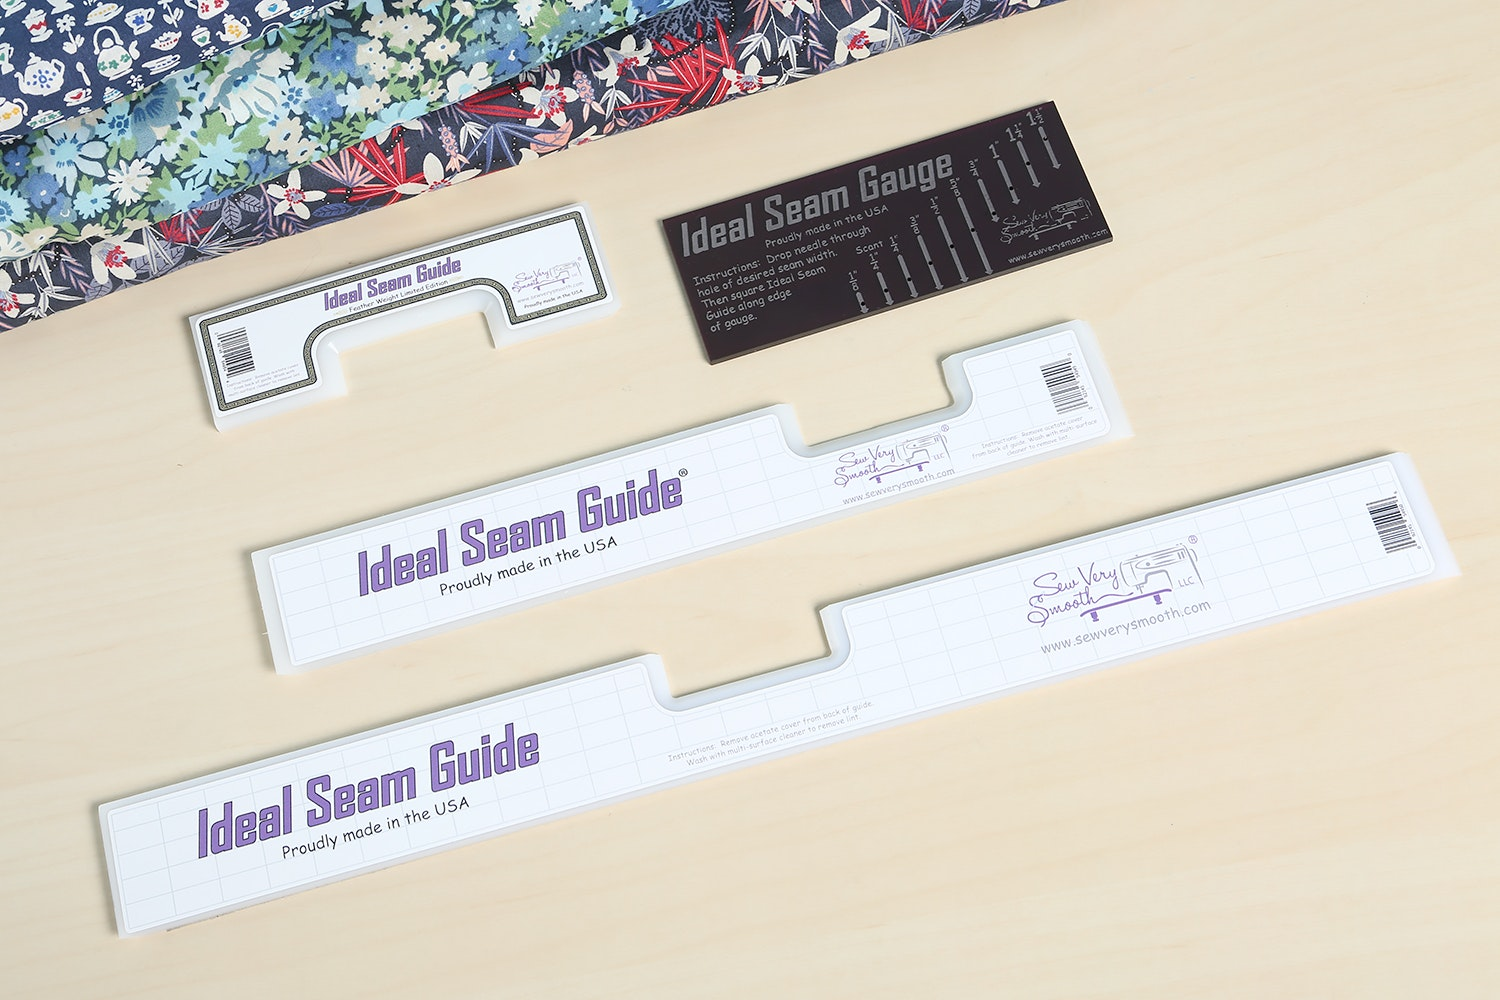 Combo set: All three Ideal Seam Guides and Ideal Seam Gauge (+ $20)